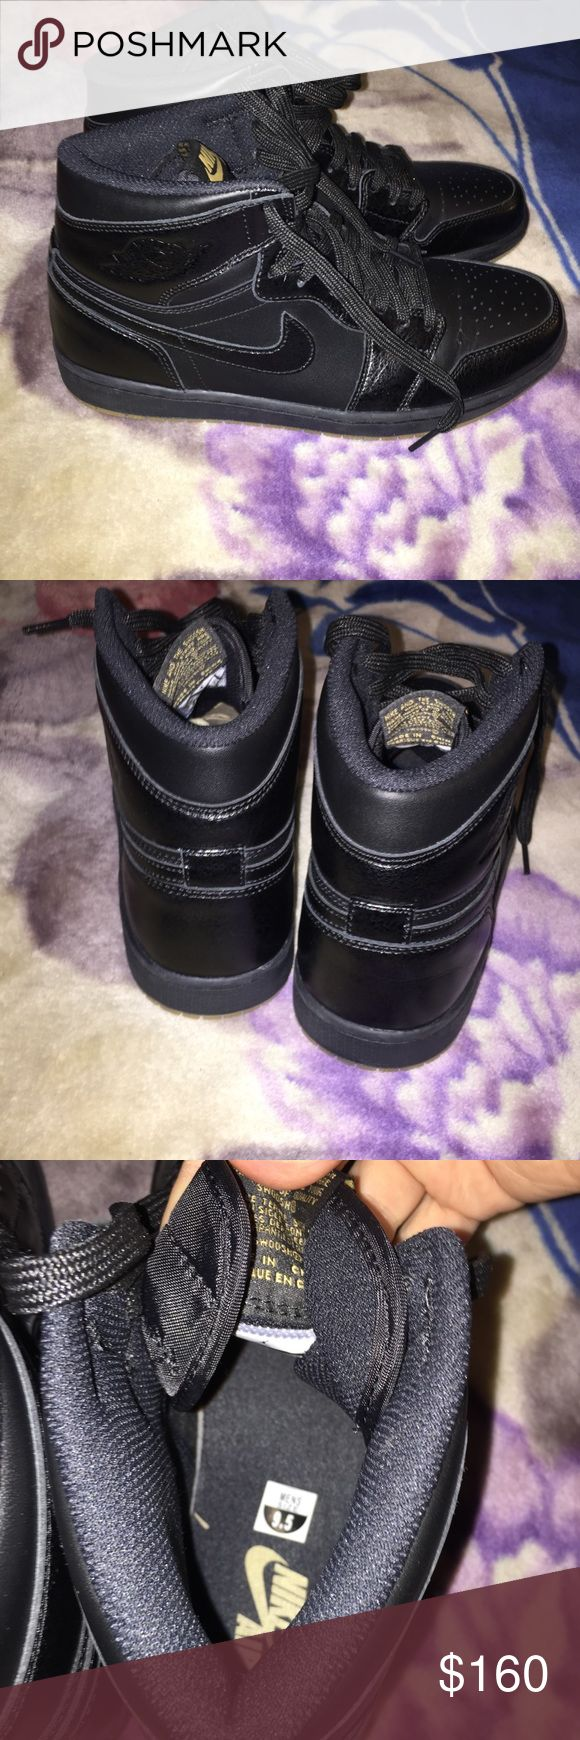 UNWORN Nike Air Jordan 1 retro OG Black gum 9.5 Unworn,new without box,one shoe still has the cardboard shaper, size 9.5 men's,black with gum soles, 555088-020 high top sneakers,hard to find from 2014 in this color way and condition. Air Jordan Shoes Athletic Shoes